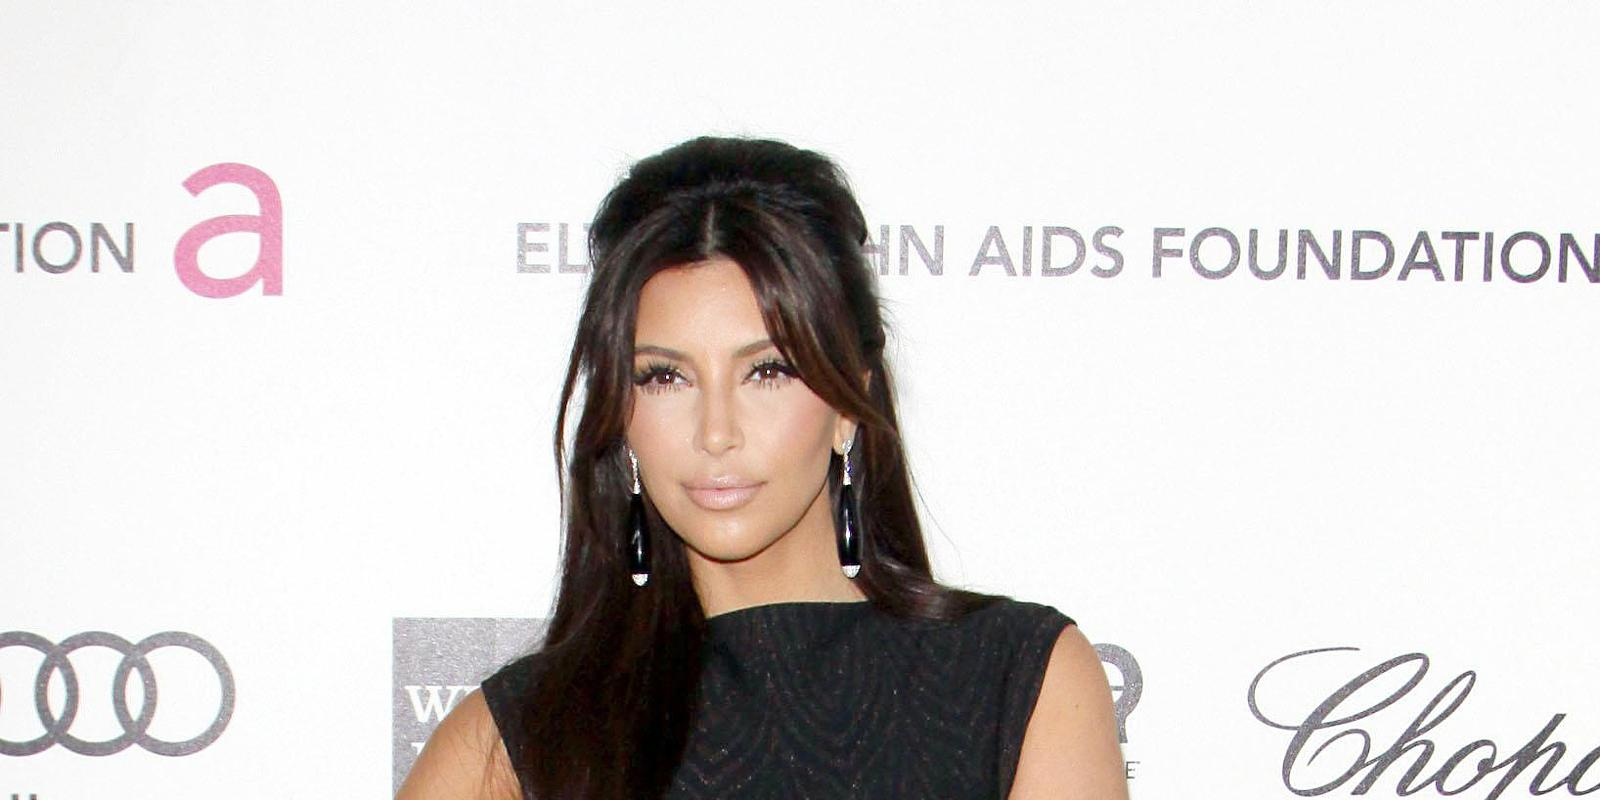 from Troy kim kardashian is dating who right now